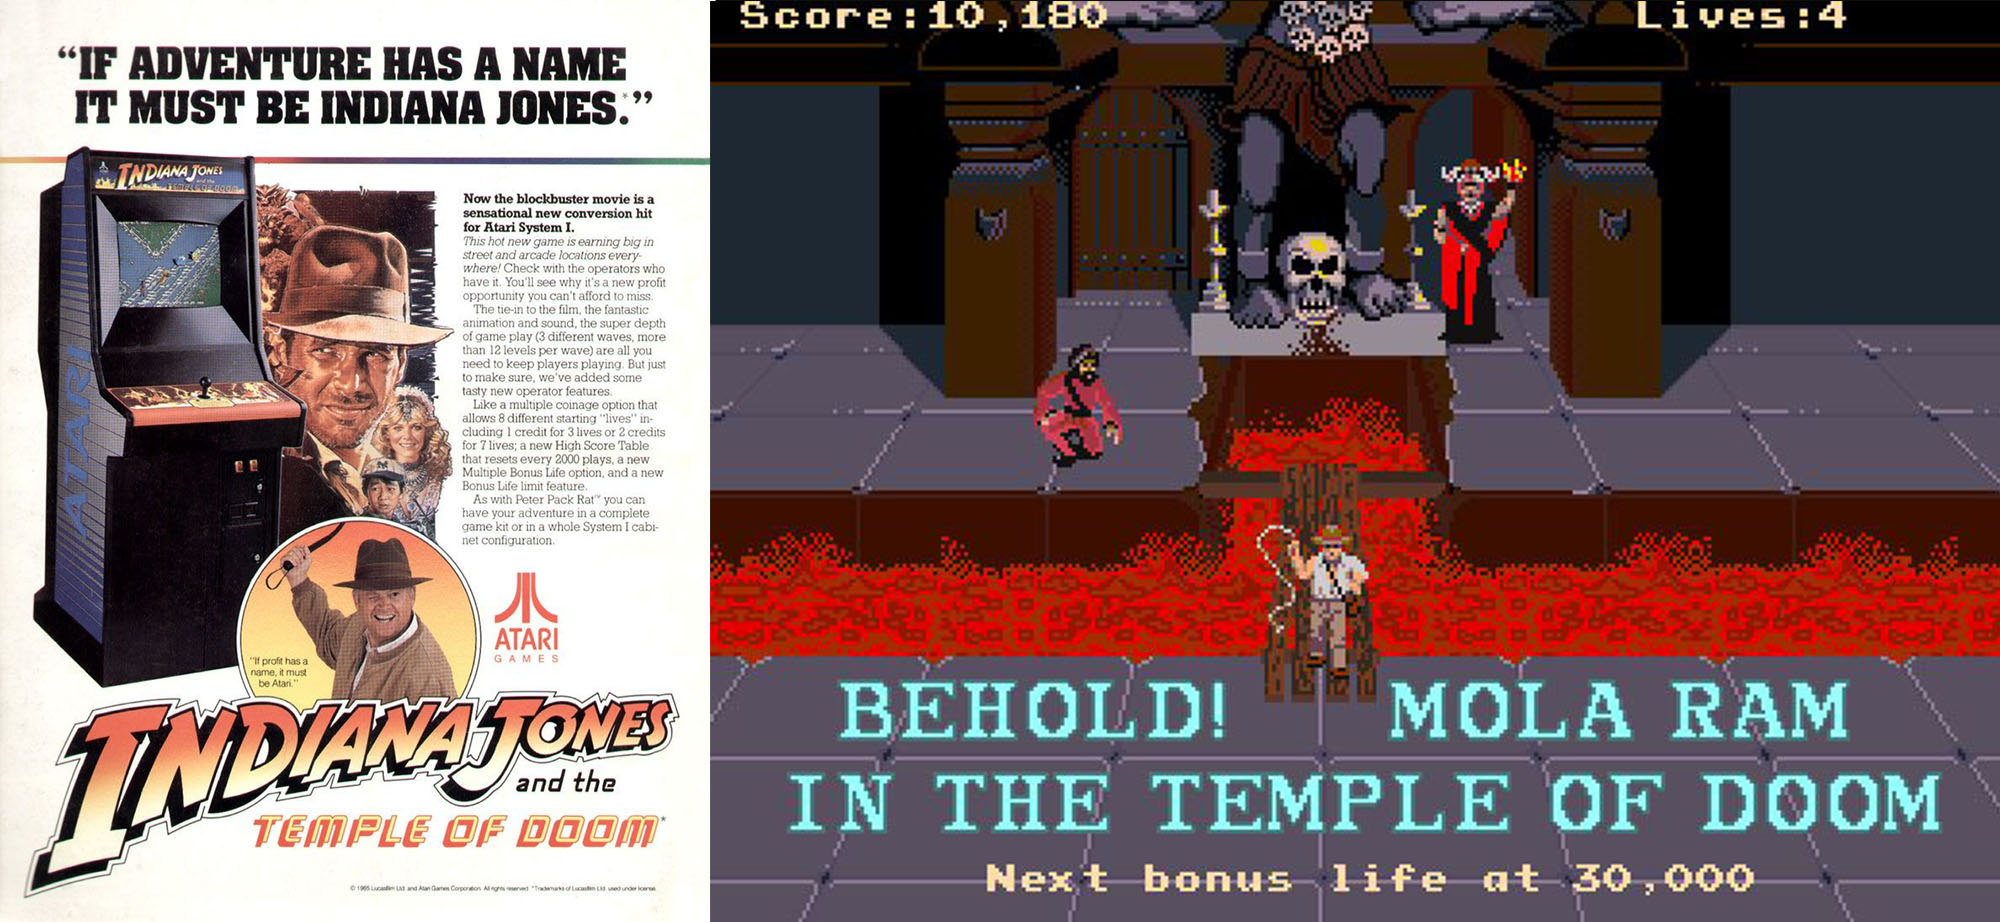 Indiana Jones and the Temple of Doom arcade 1985